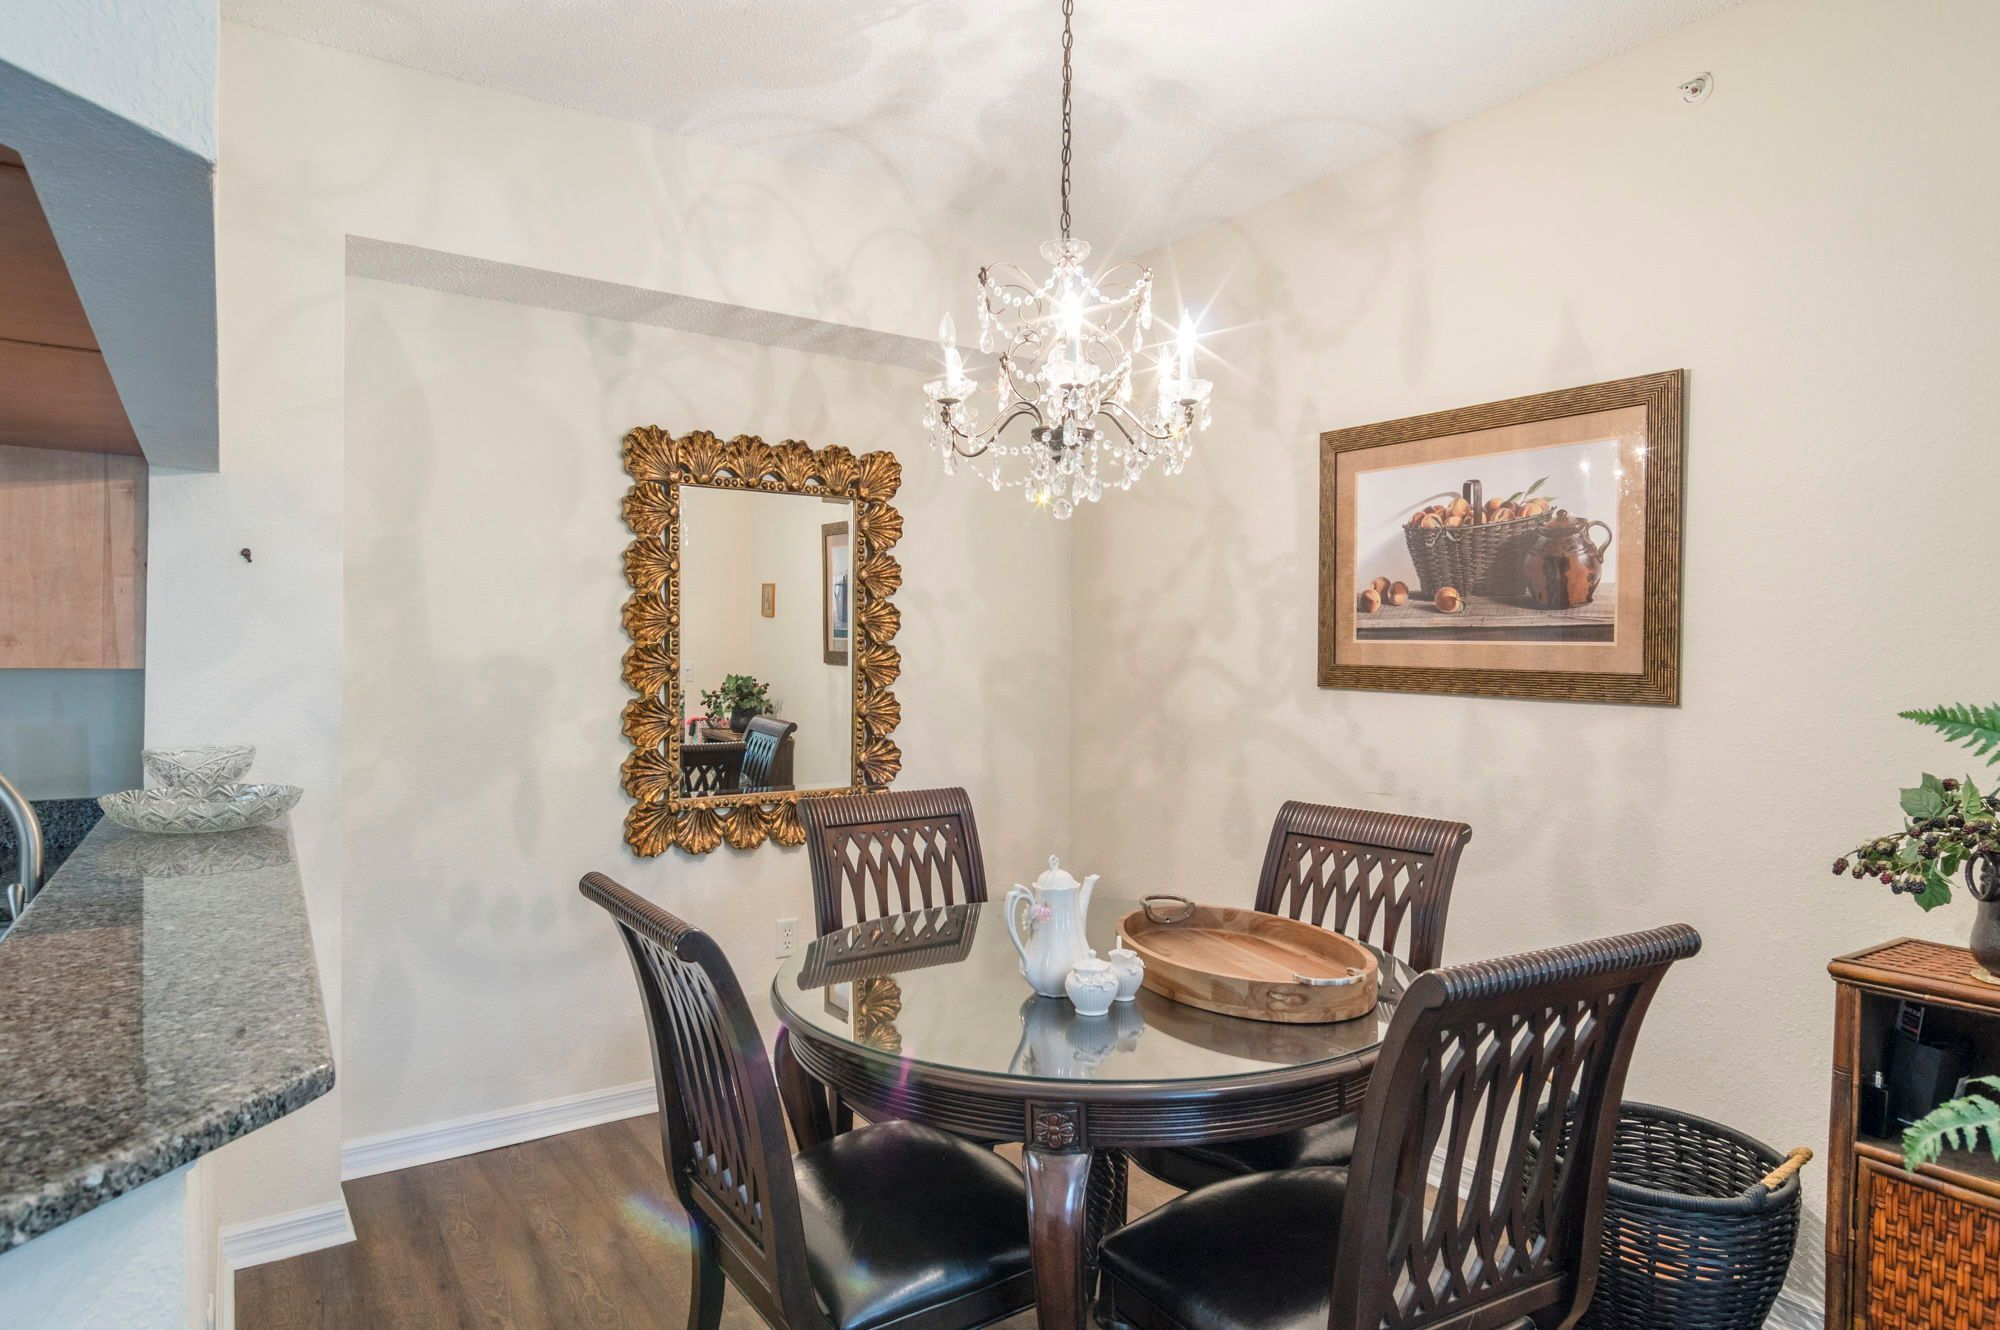 28eab4e95b7a0d9062c954a0ef88a7e1 - Craigslist Palm Beach Gardens Rooms For Rent